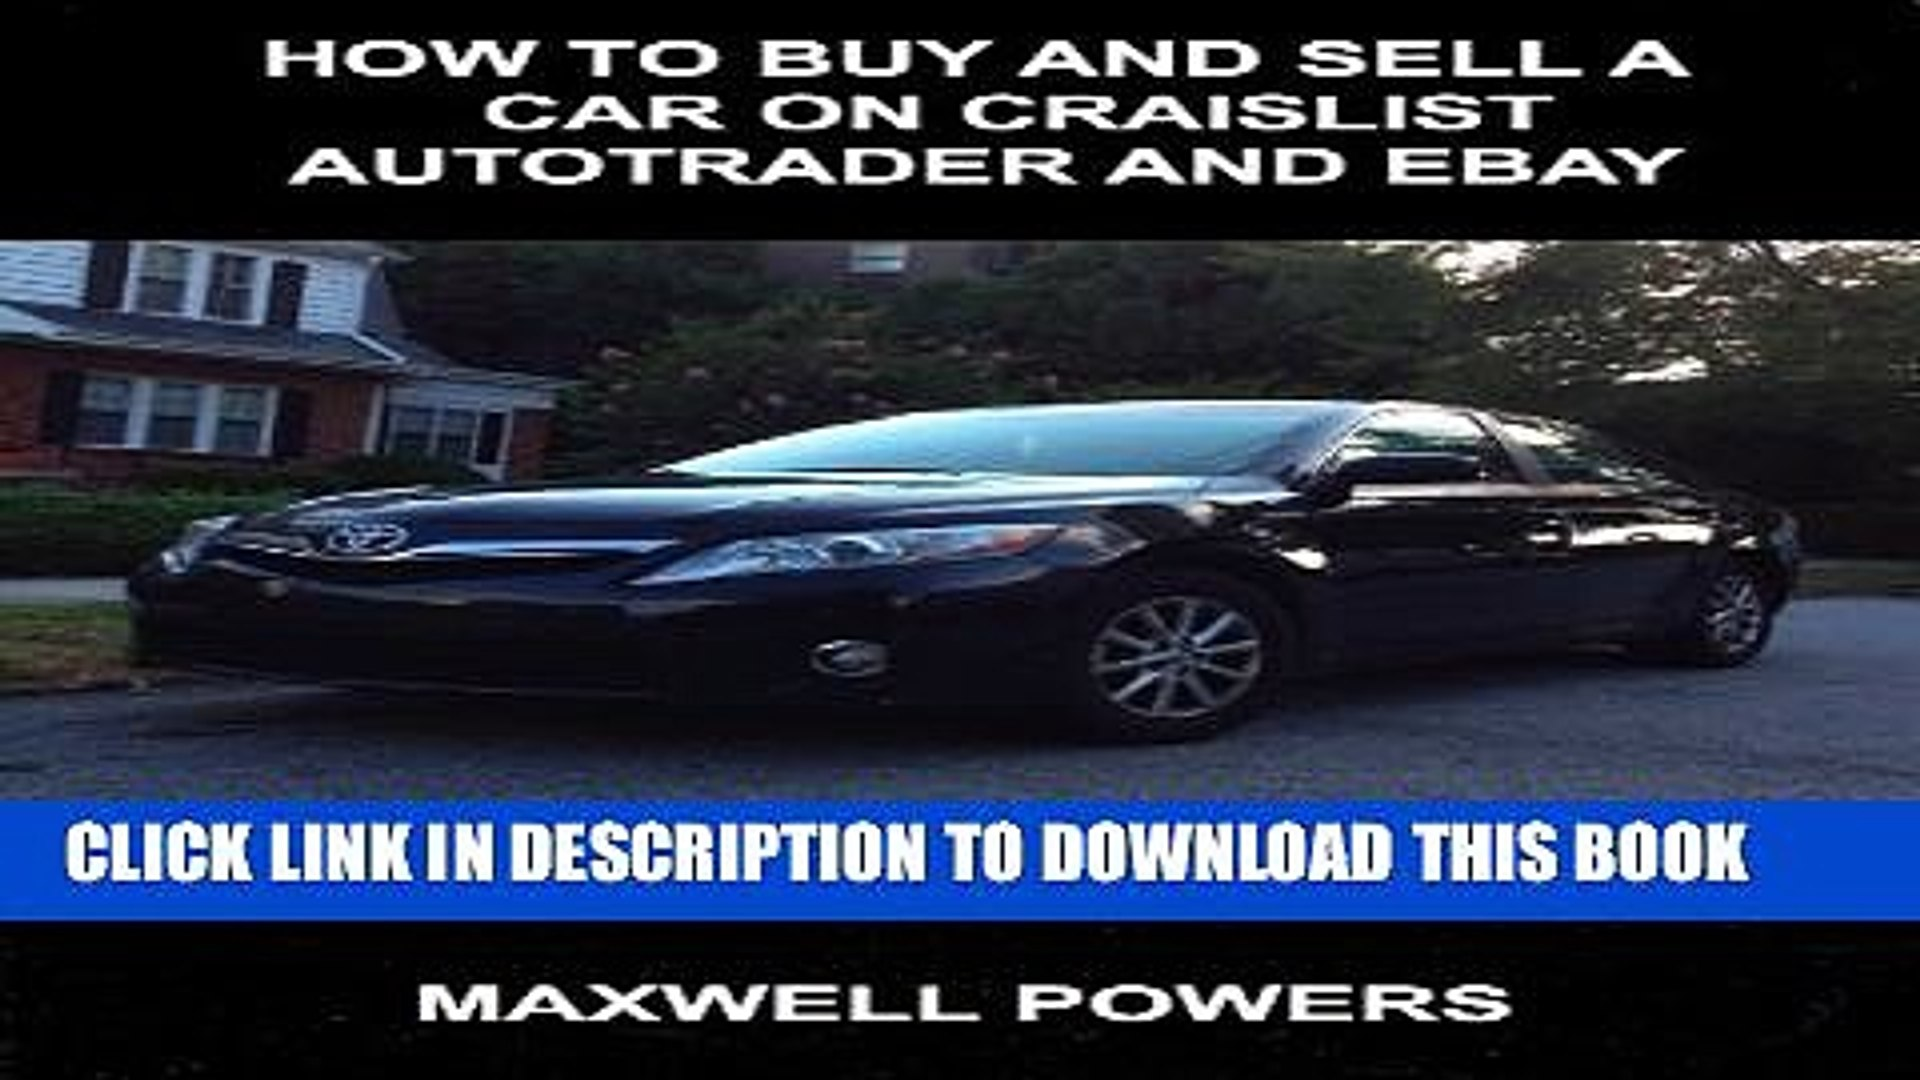 Pdf How To Buy And Sell A Car On Craigslist Autotrader And Ebay Popular Collection Video Dailymotion